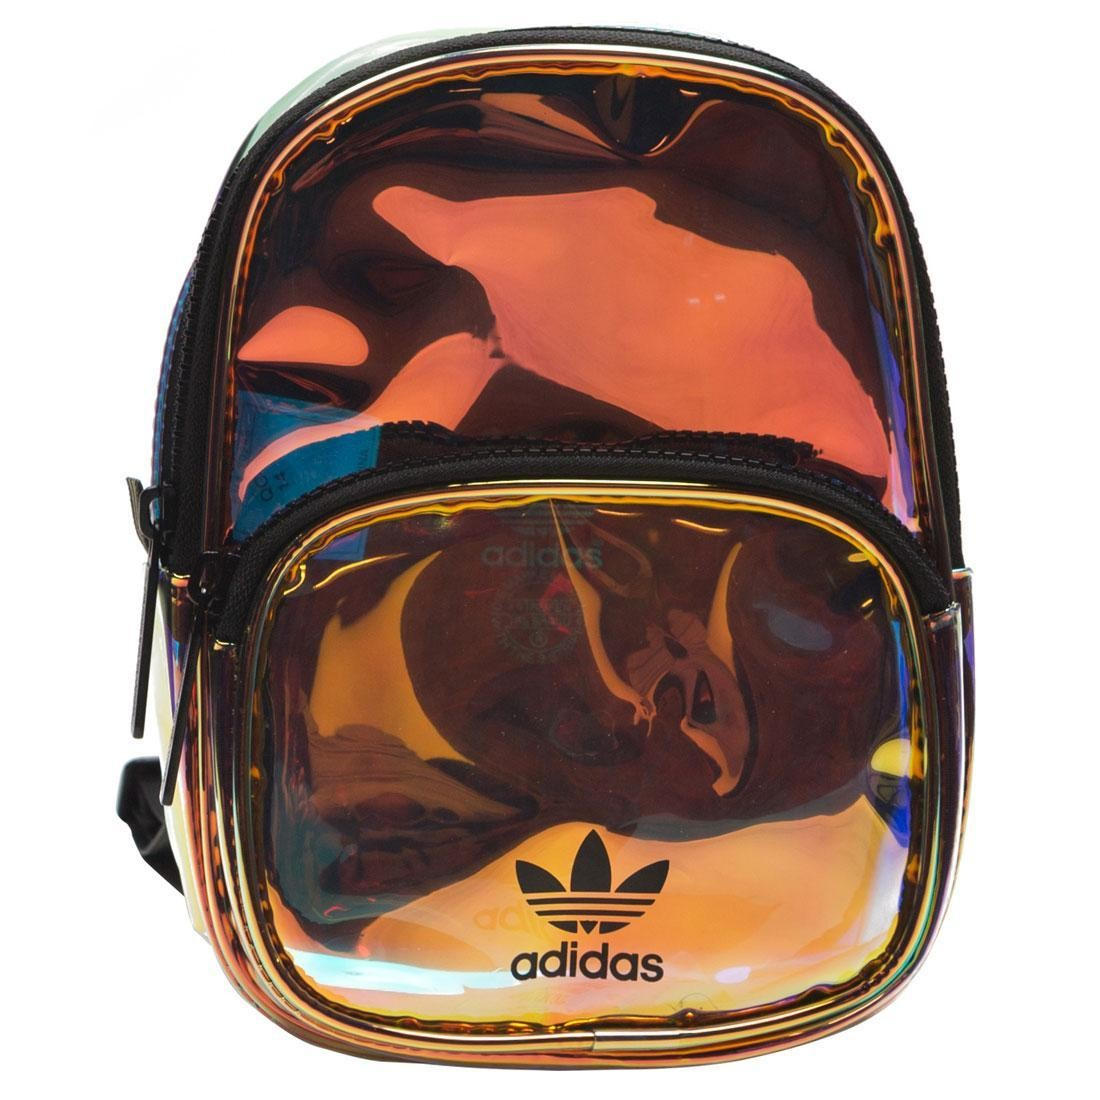 Adidas Mini Iridescent Backpack (multi)